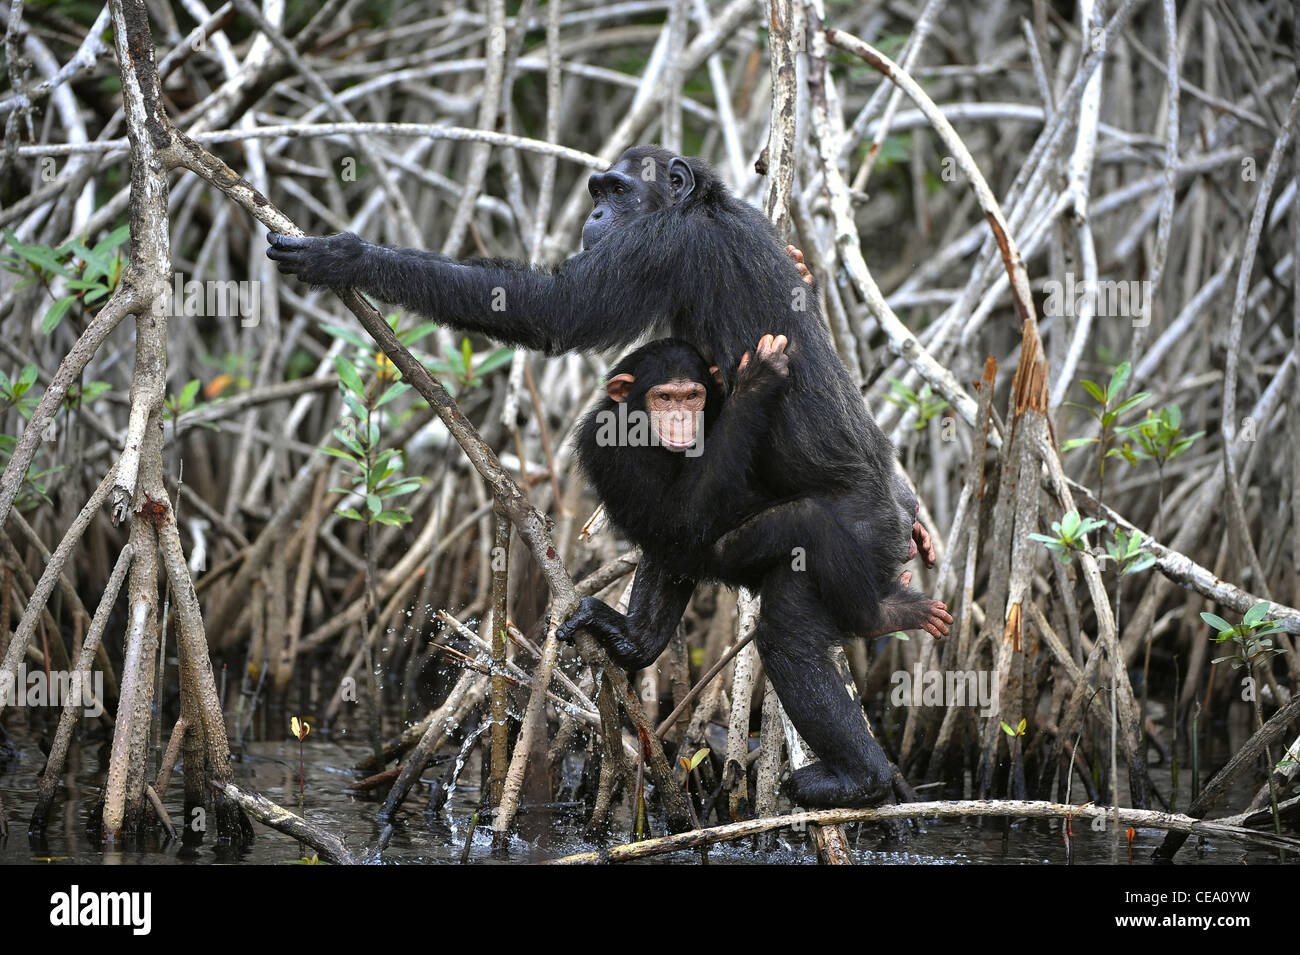 Chimpanzee with a cub. The chimpanzee with a cub on roots mangrove thickets - Stock Image